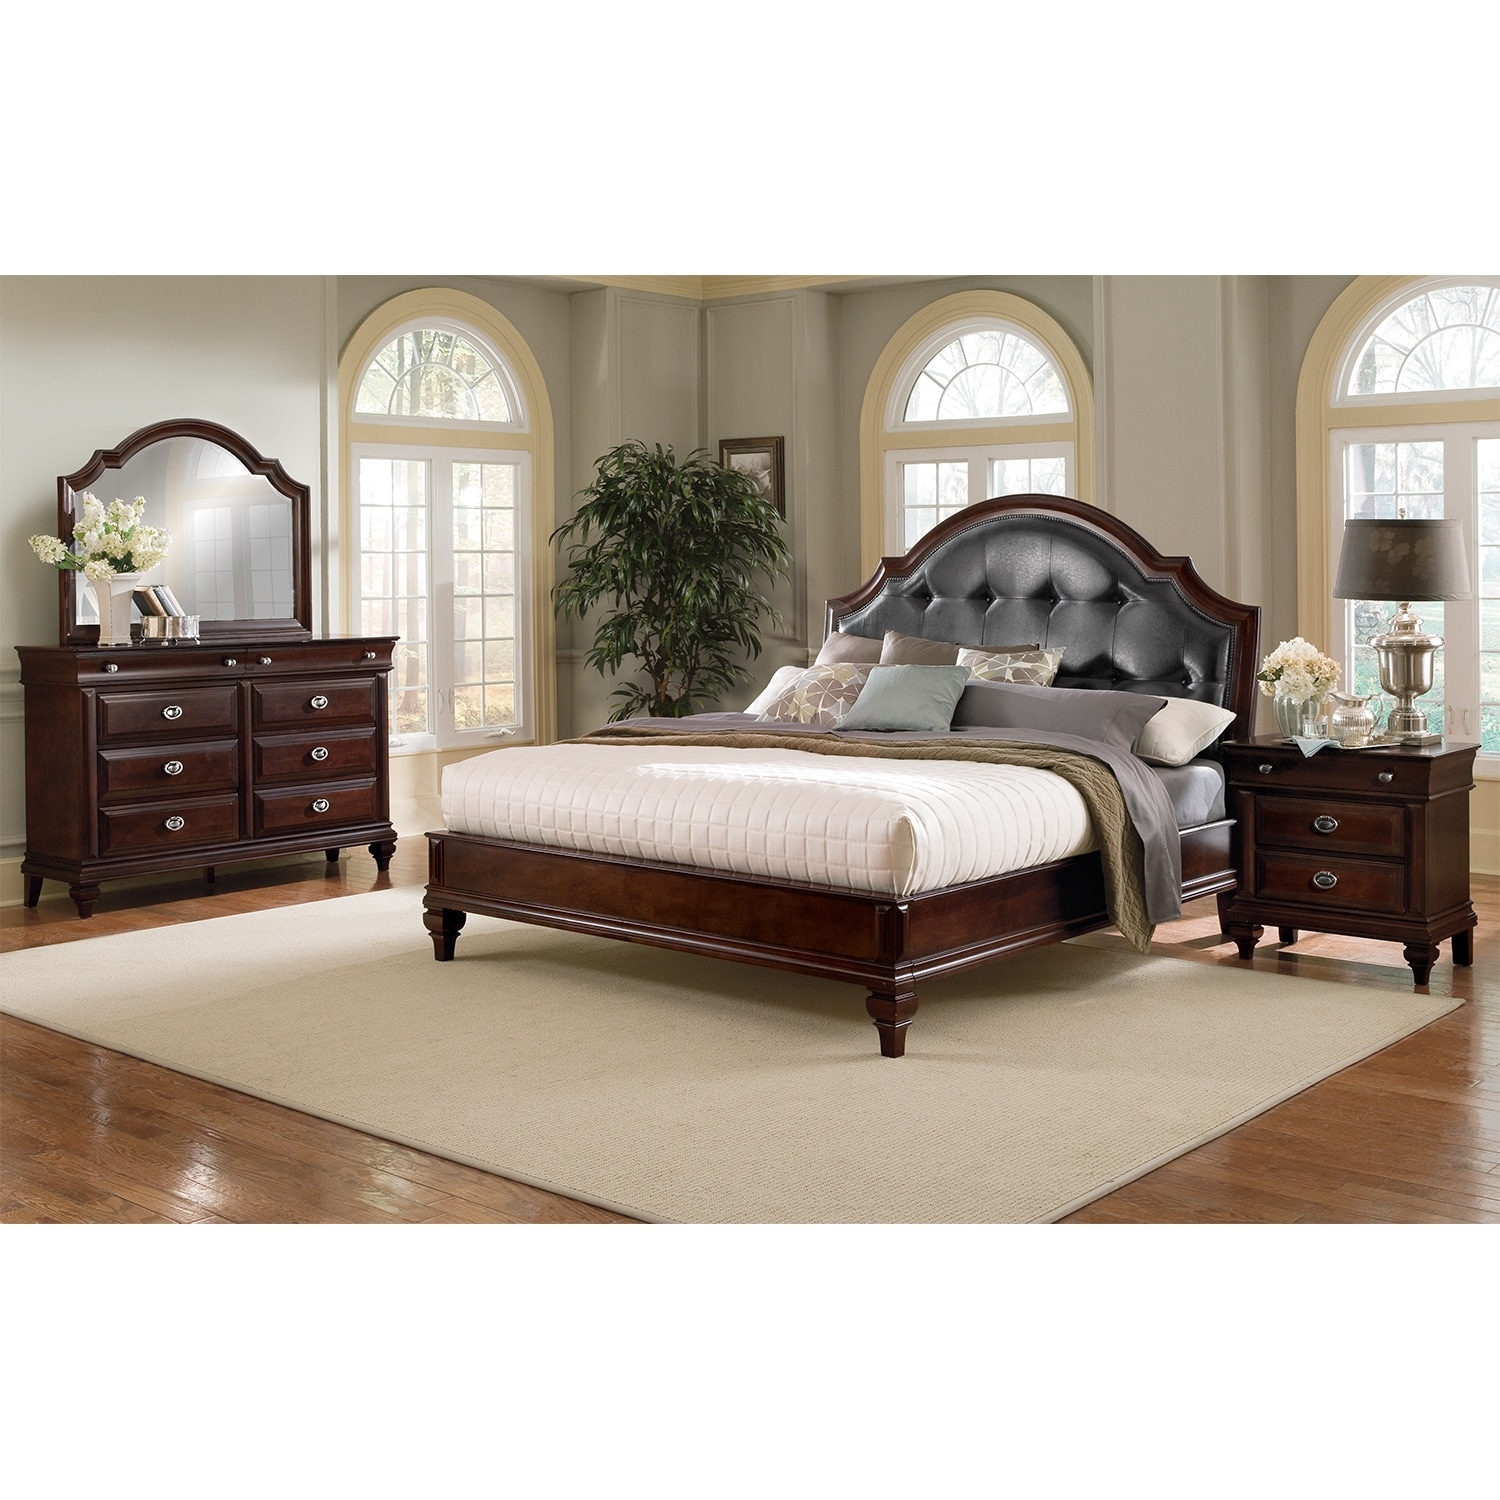 Manhattan 6 Piece Queen Bedroom Set Cherry: Manhattan 6-Piece Upholstered Bedroom Set With Nightstand